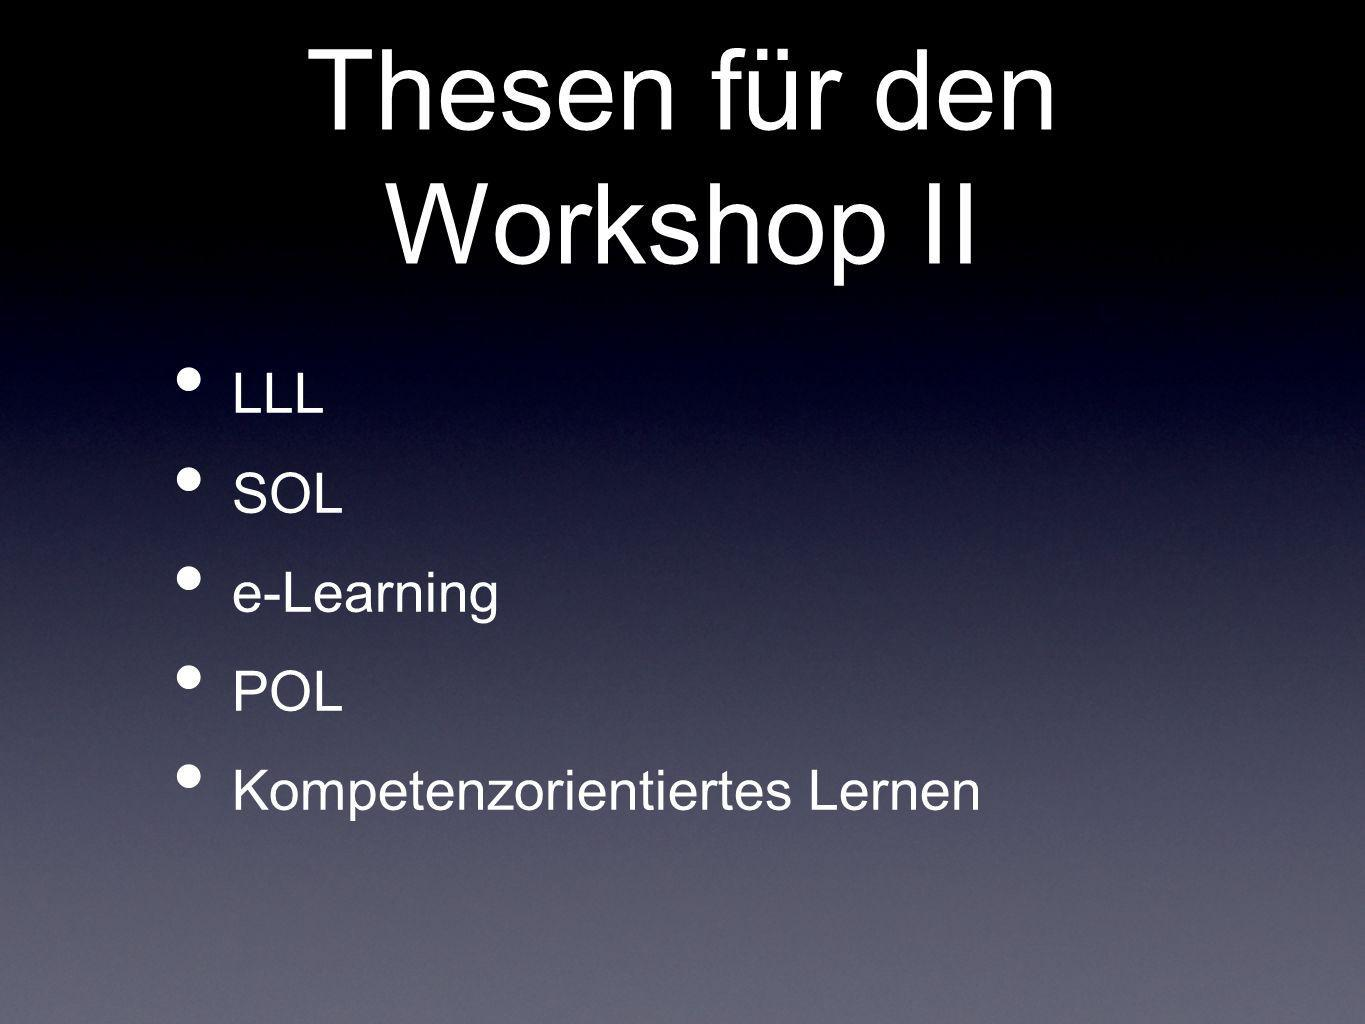 Thesen für den Workshop II